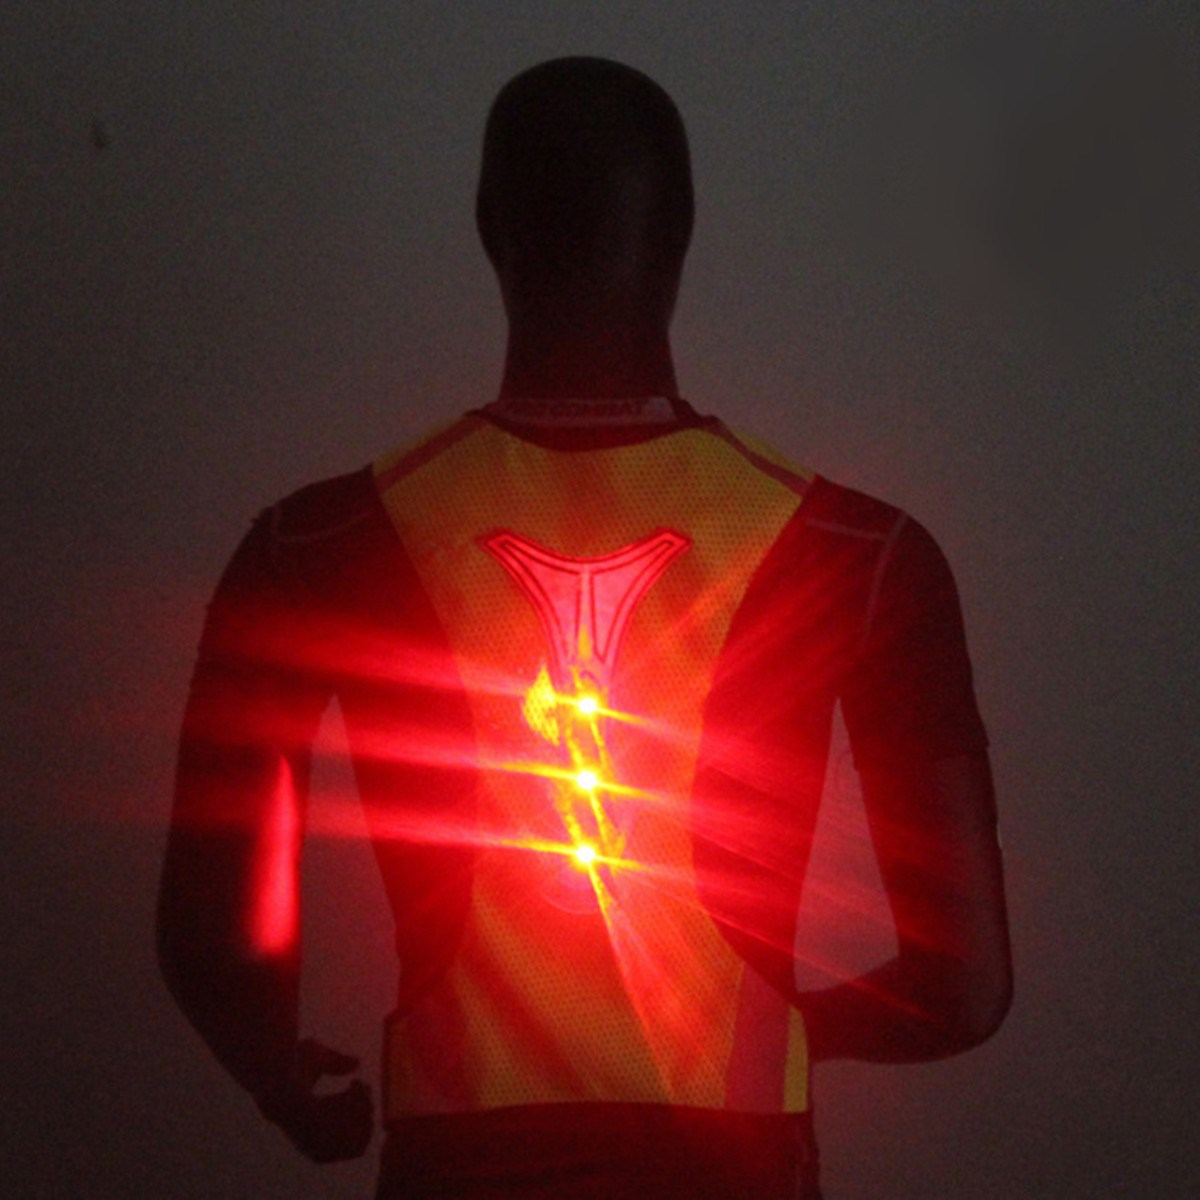 NEW LED Reflective Safety Vest for Night Running Cycling Breathable High Visibility fluorescence yellow high visibility